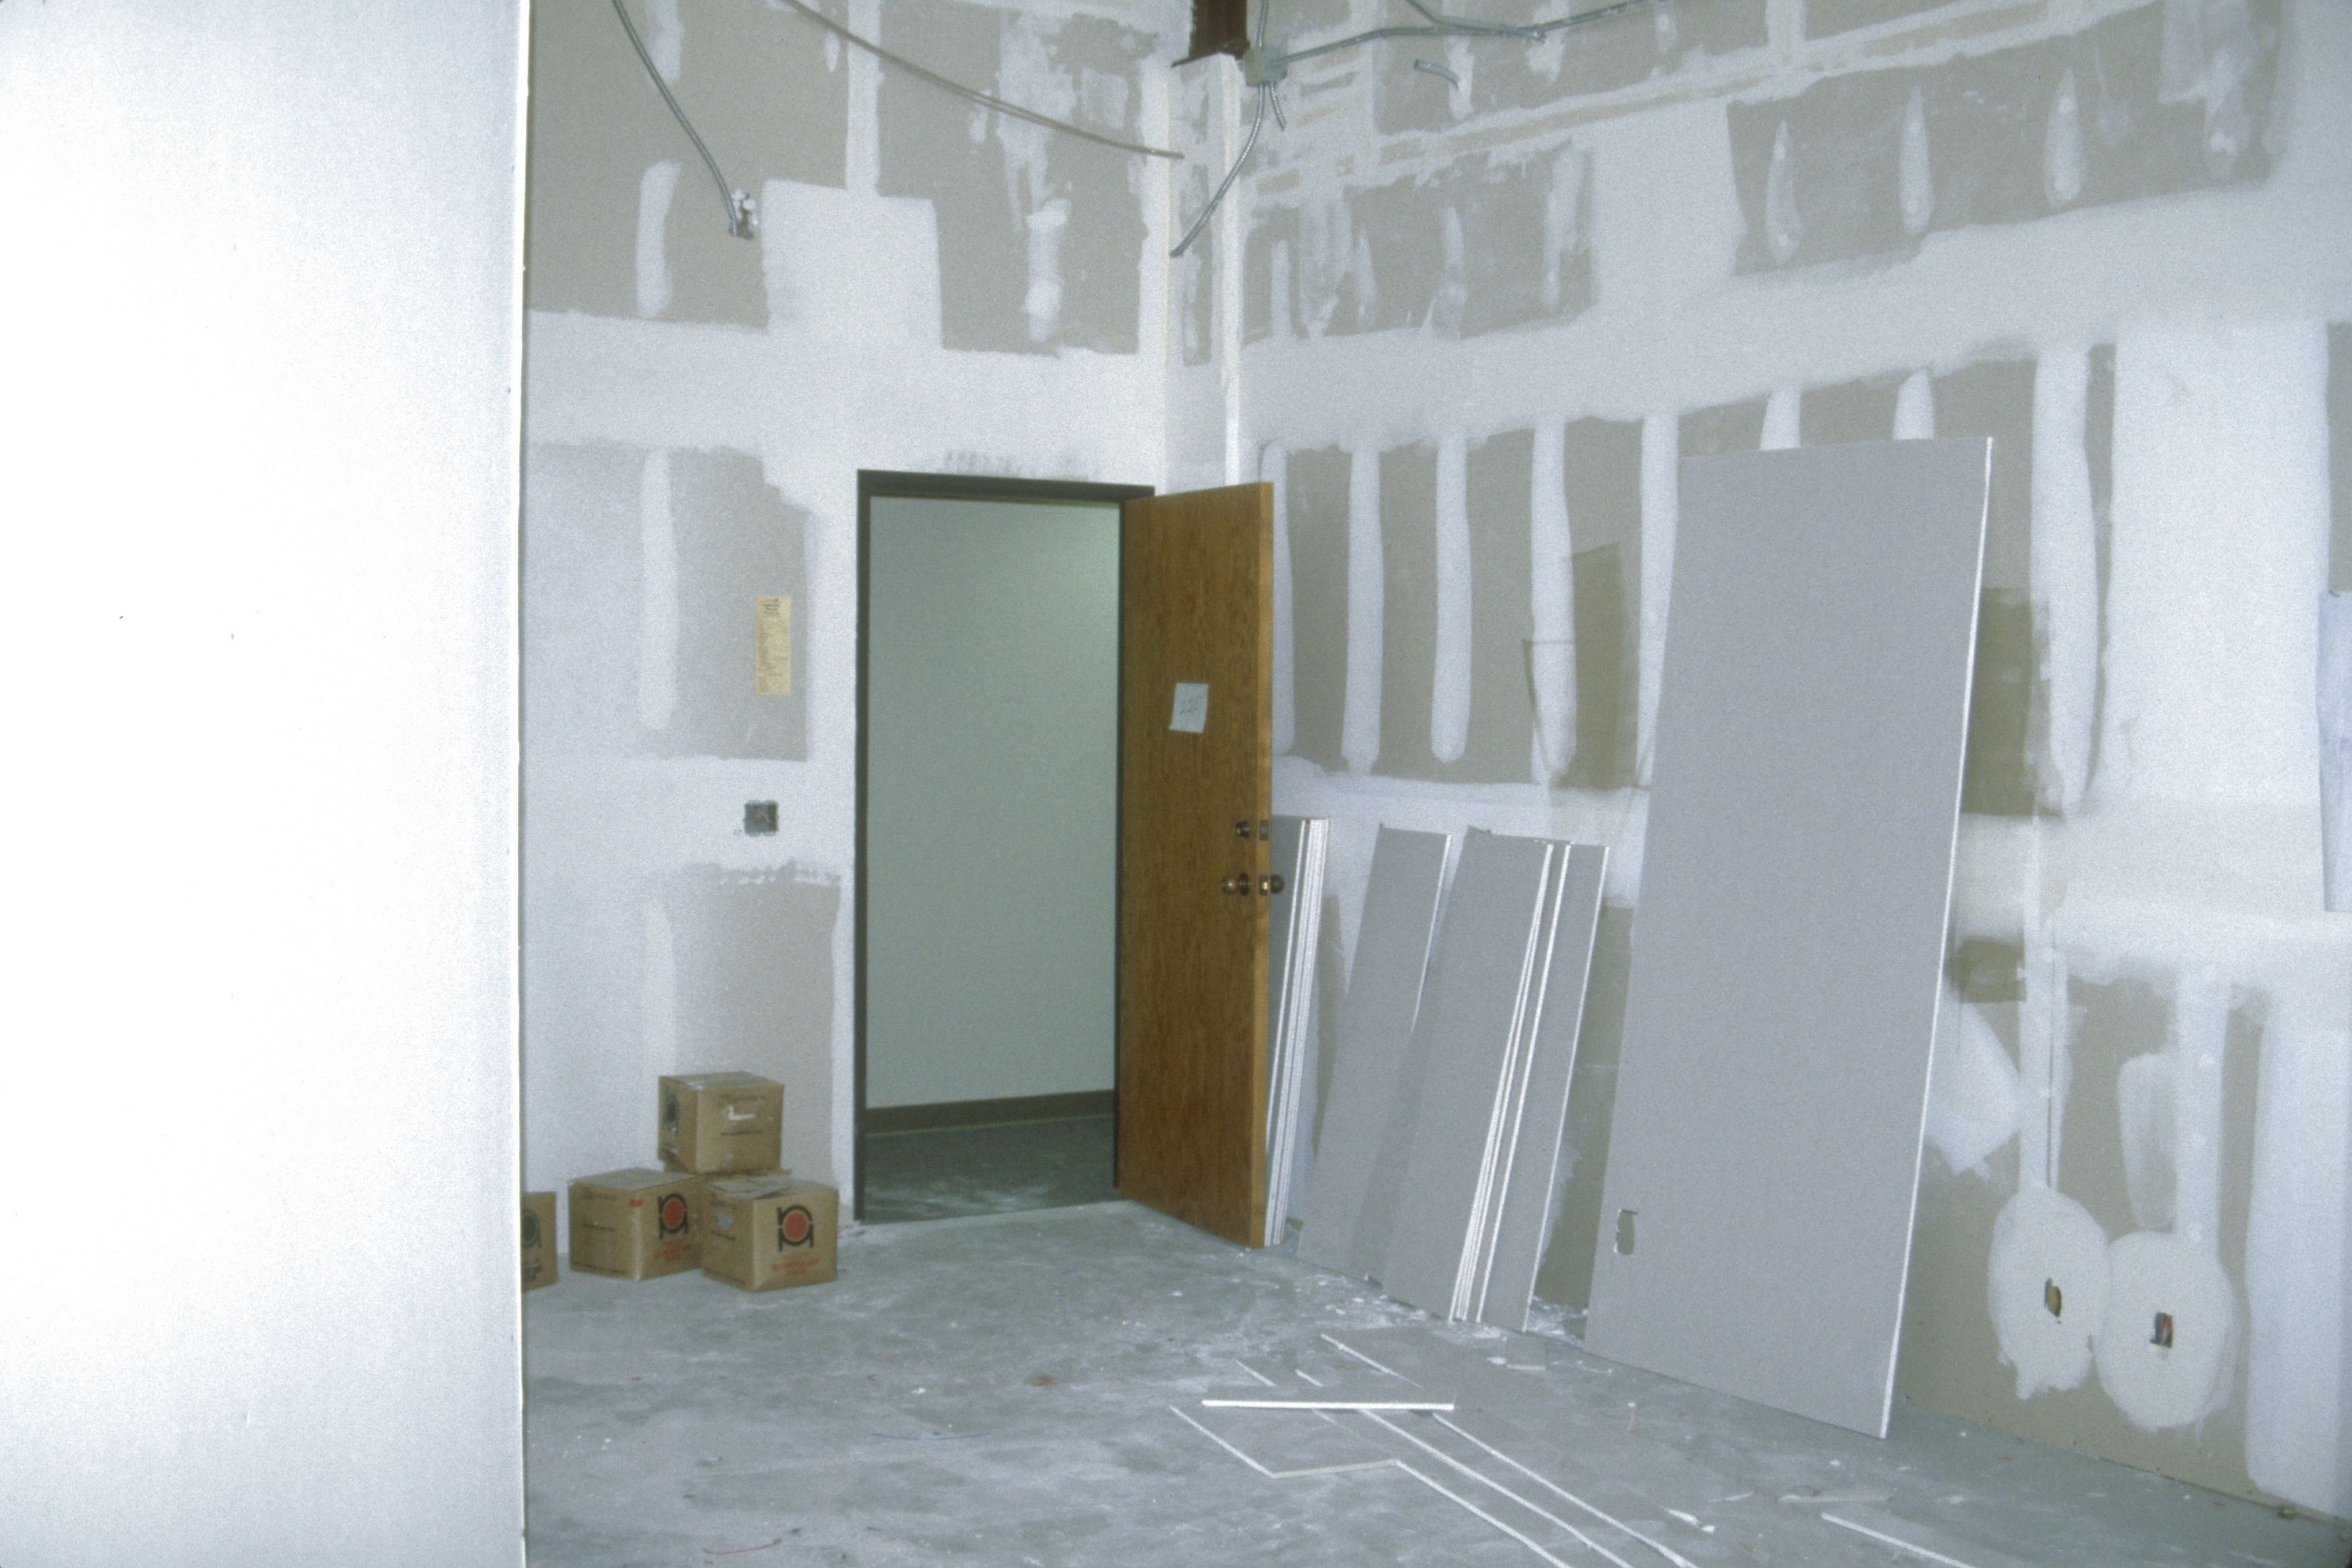 Painting Over Fresh Drywall With Regular Wall Paint May Result In An Uneven Finish You May Get Acceptable Results B Painted Garage Walls Priming Walls Drywall